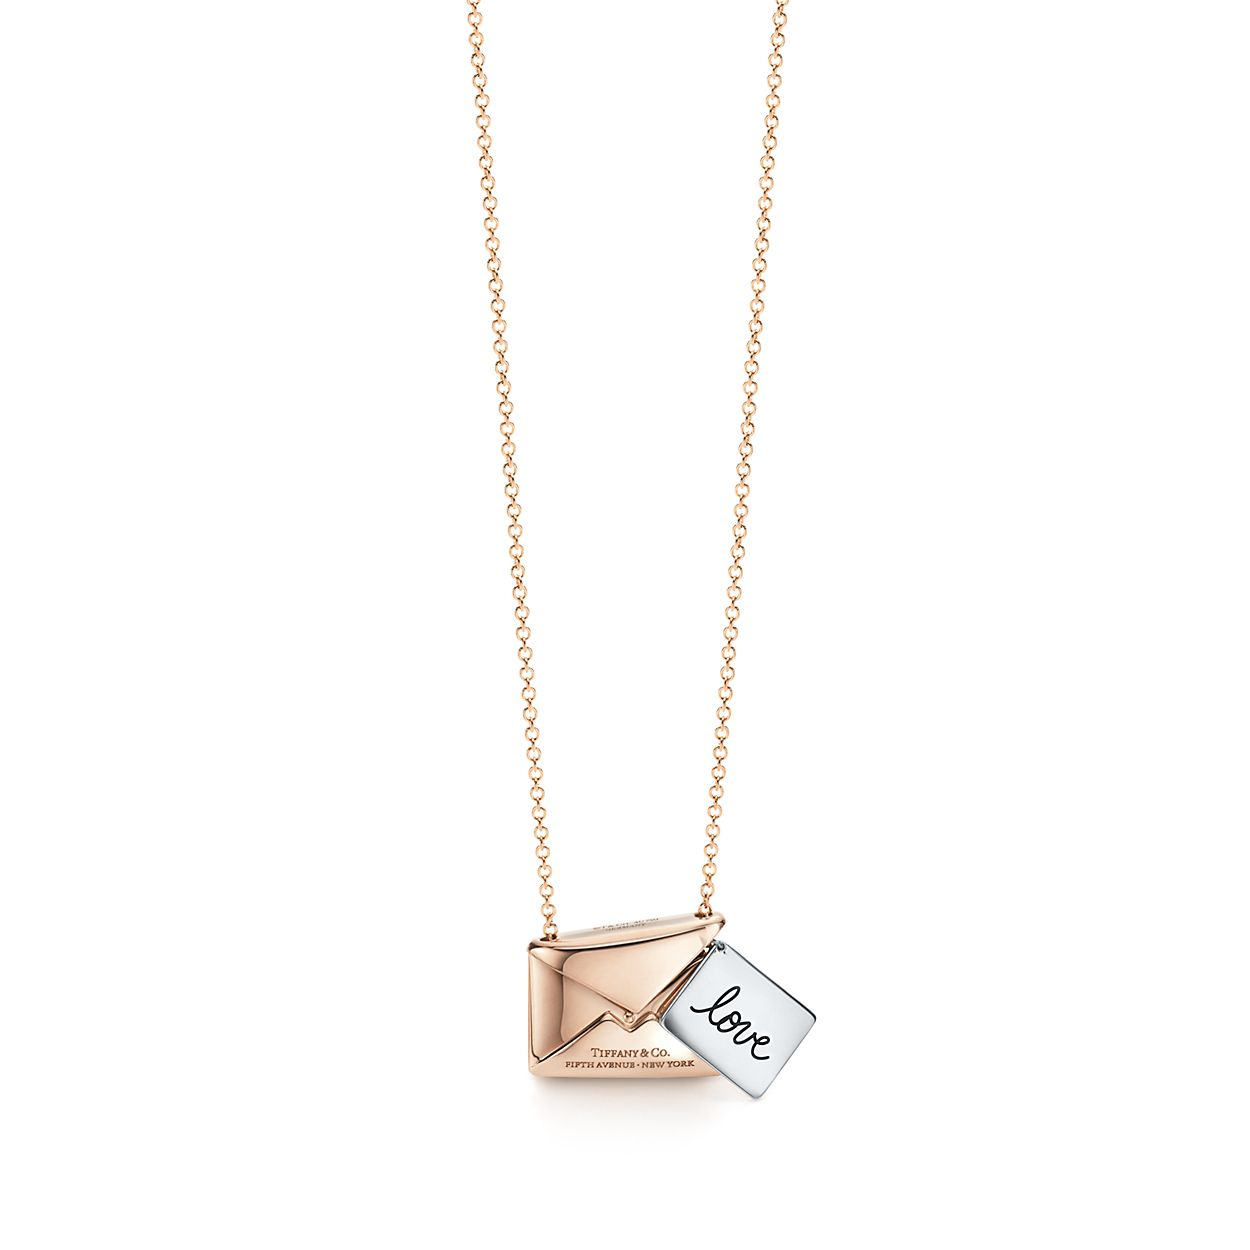 18k rose gold love letter pendant necklace tiffany co tiffany tiffany charmssweet nothingsbrlove letter pendant aloadofball Image collections